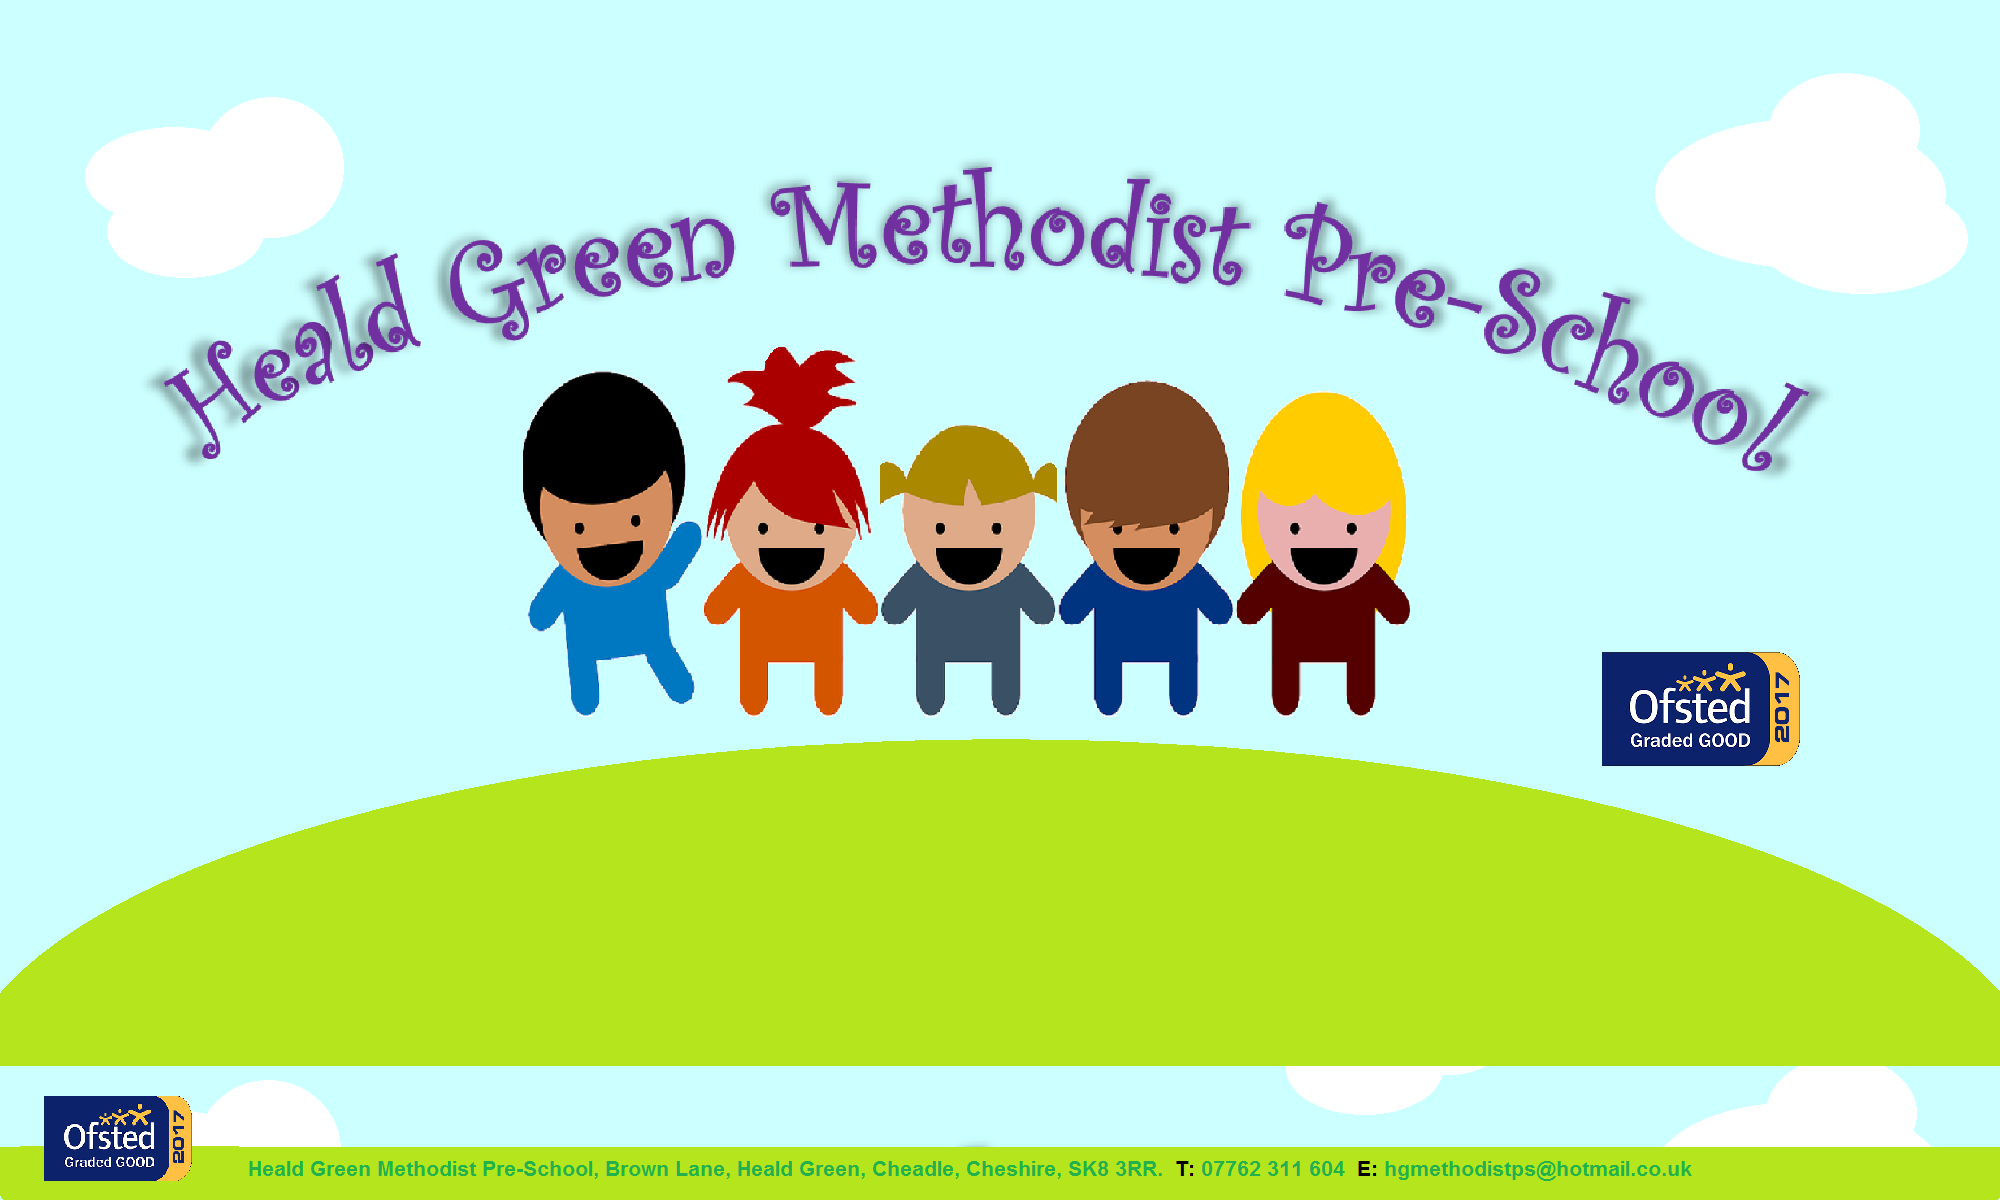 Heald Green Methodist Pre-School